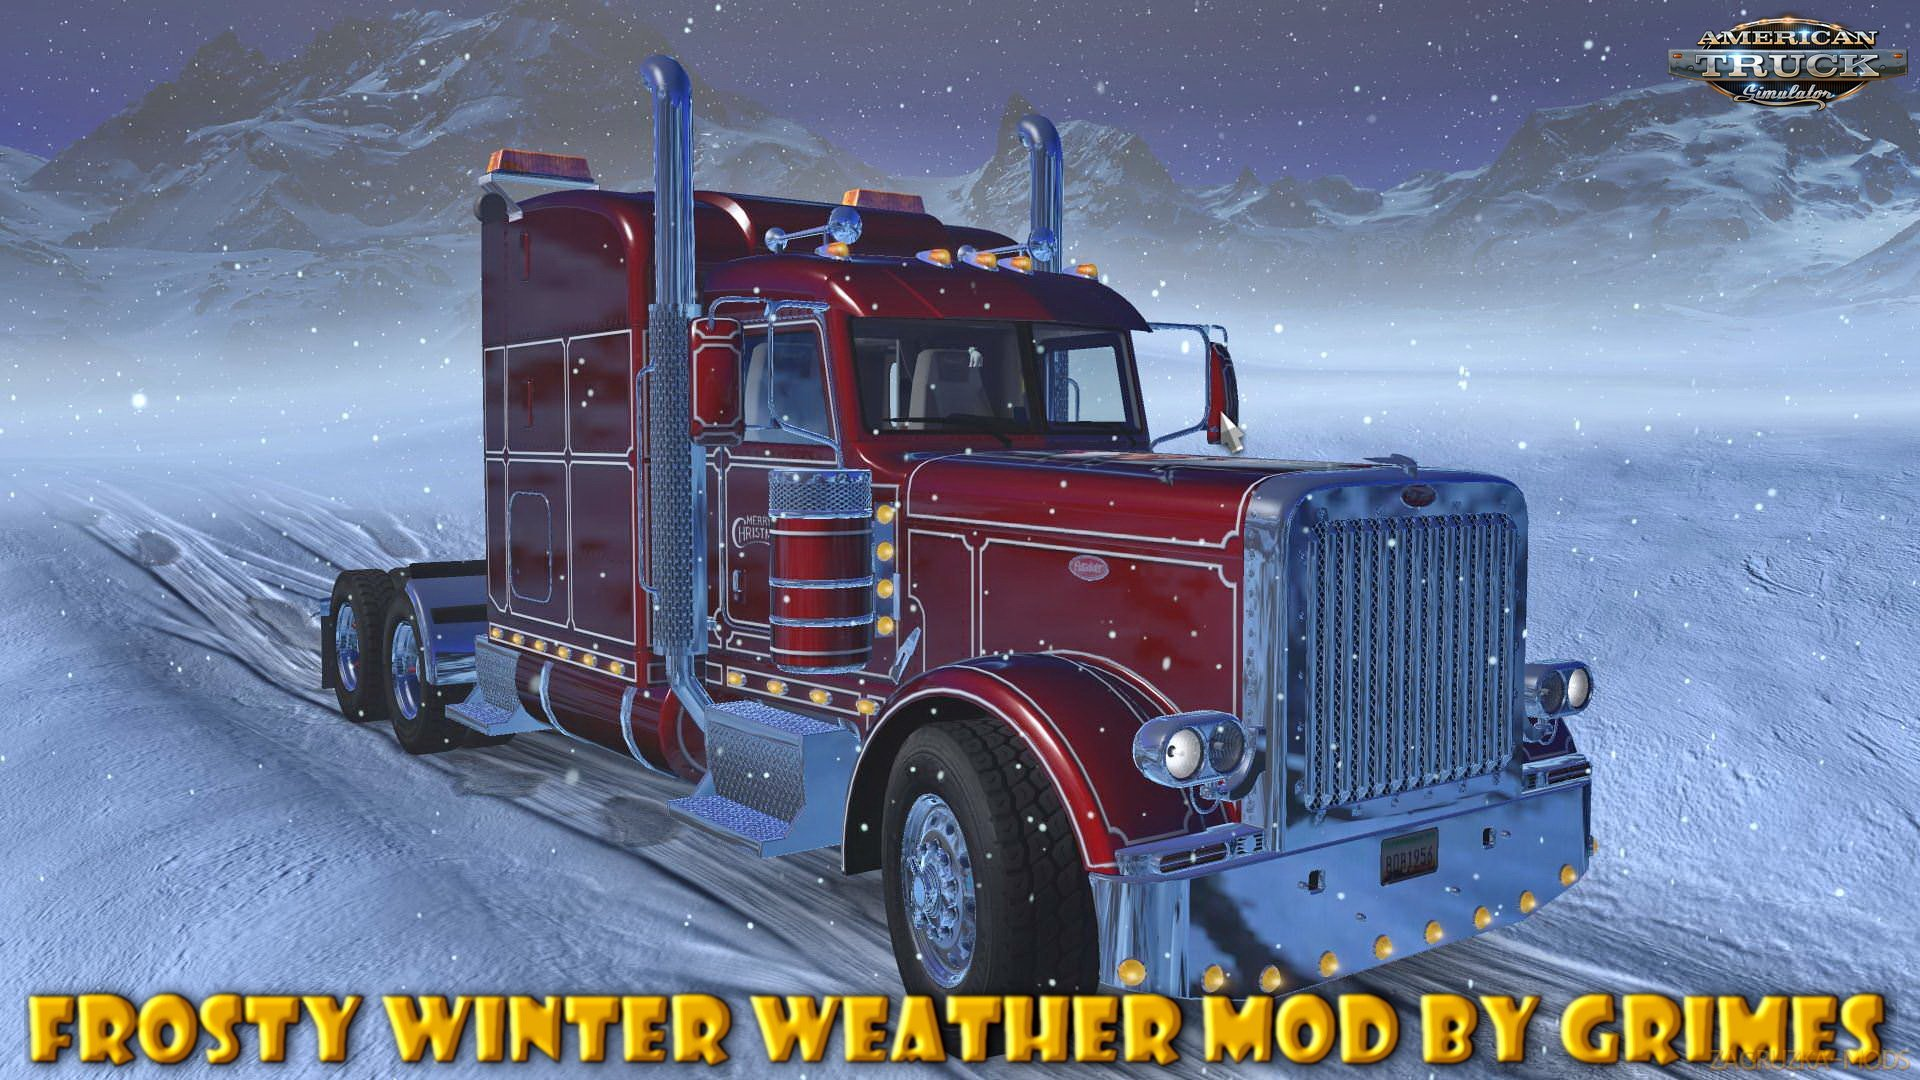 Frosty Winter Weather Mod v2.6 (1.35.x) for ATS